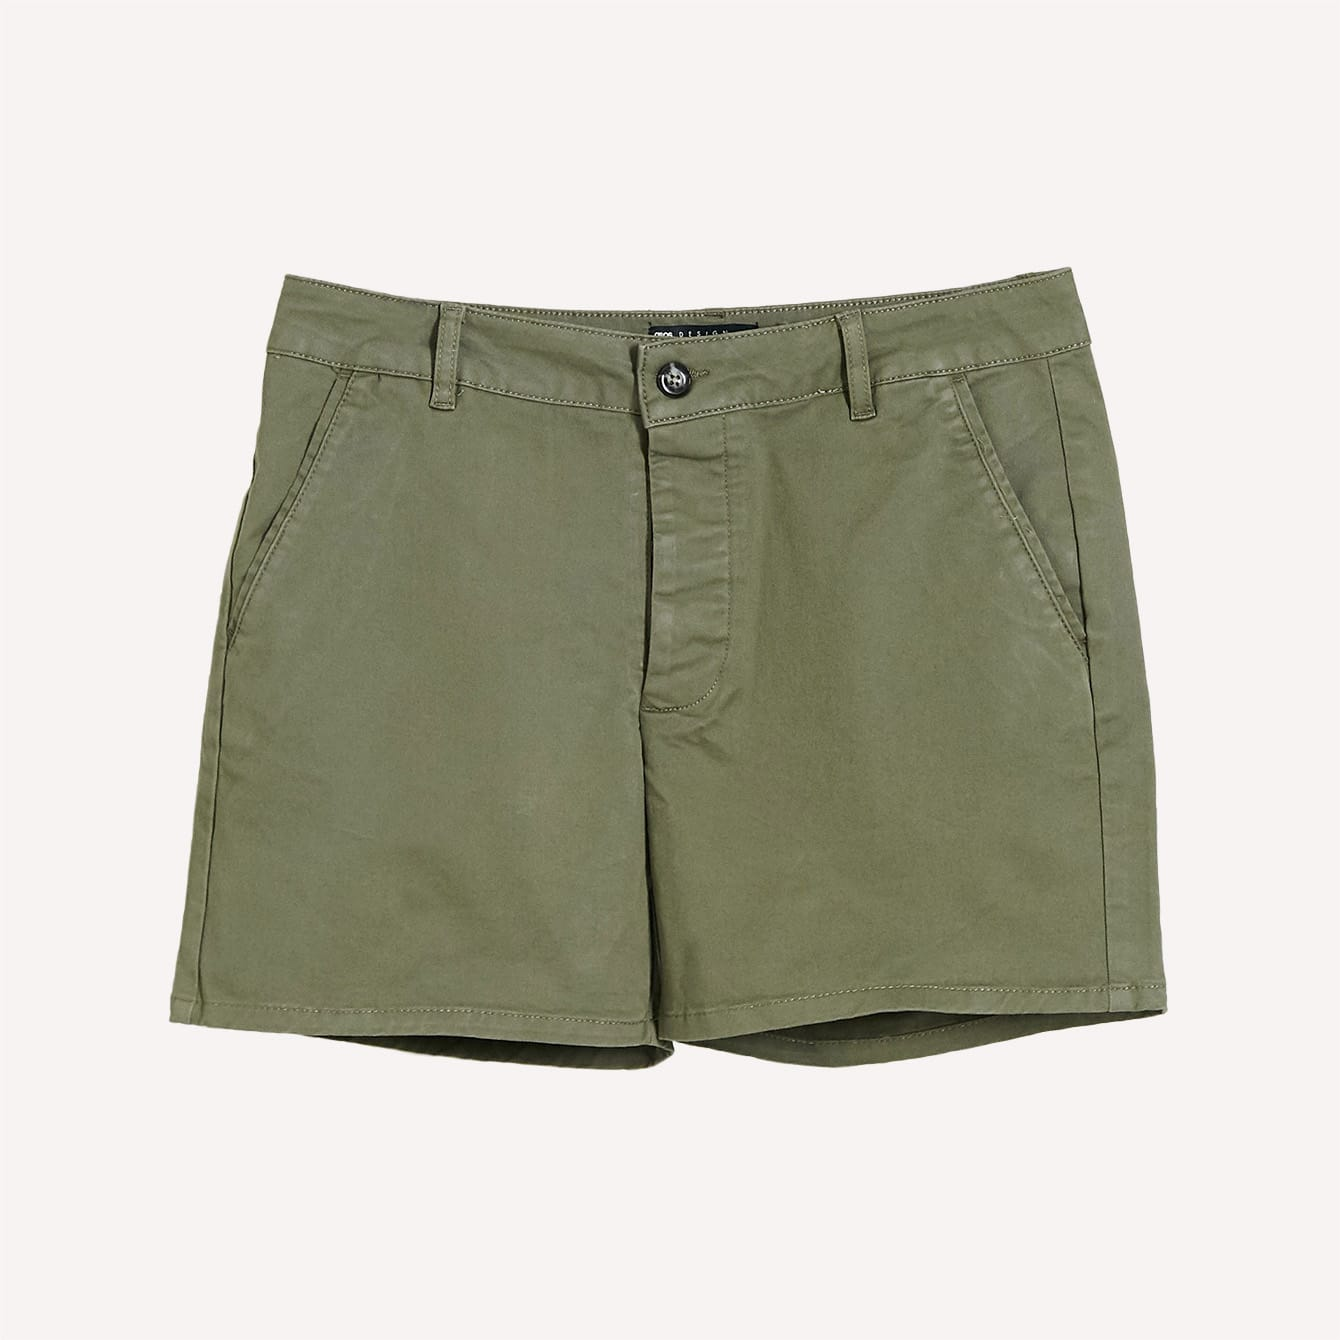 ASOS DESIGN SLIM CHINO SHORTS